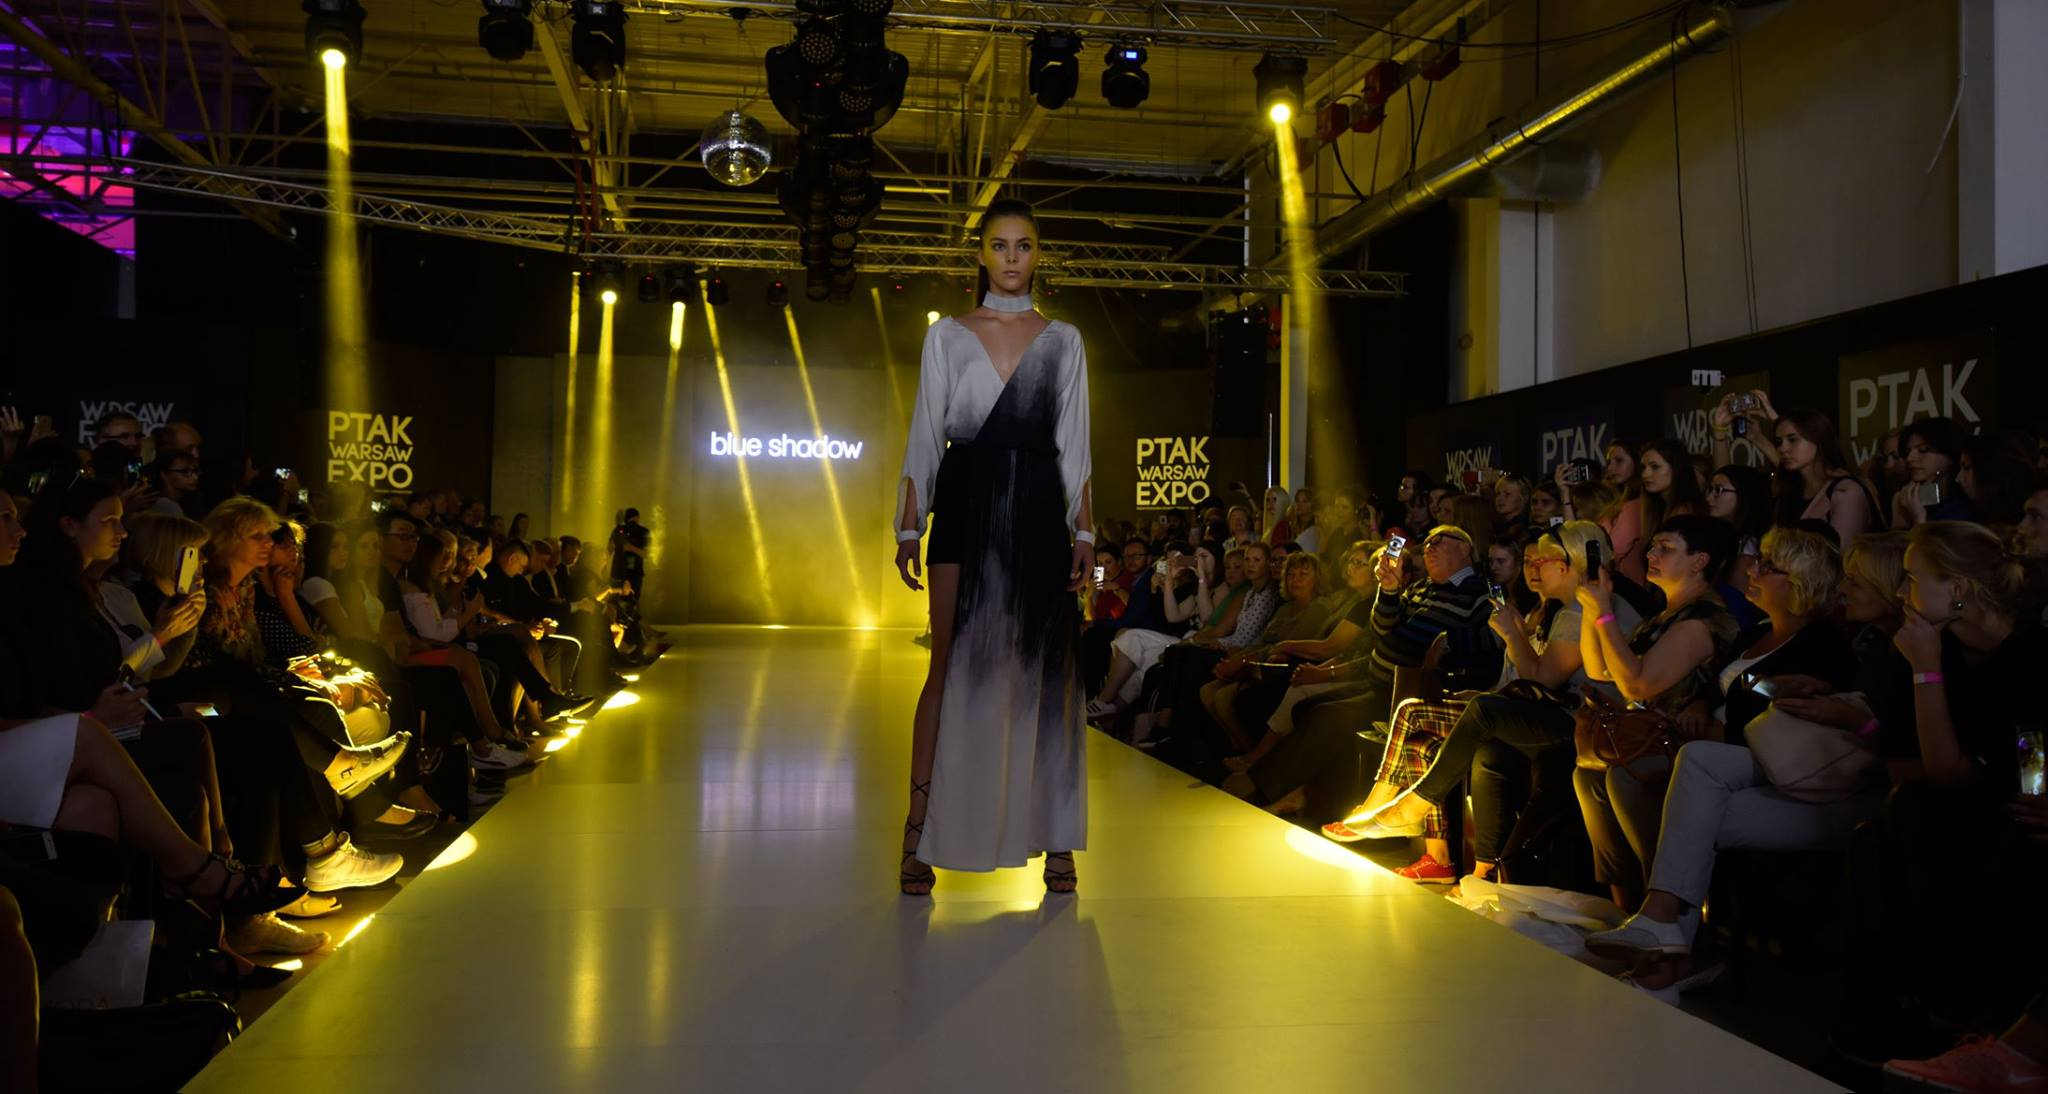 pokaz Blue Shadow, fot. Warsaw Fashion Week